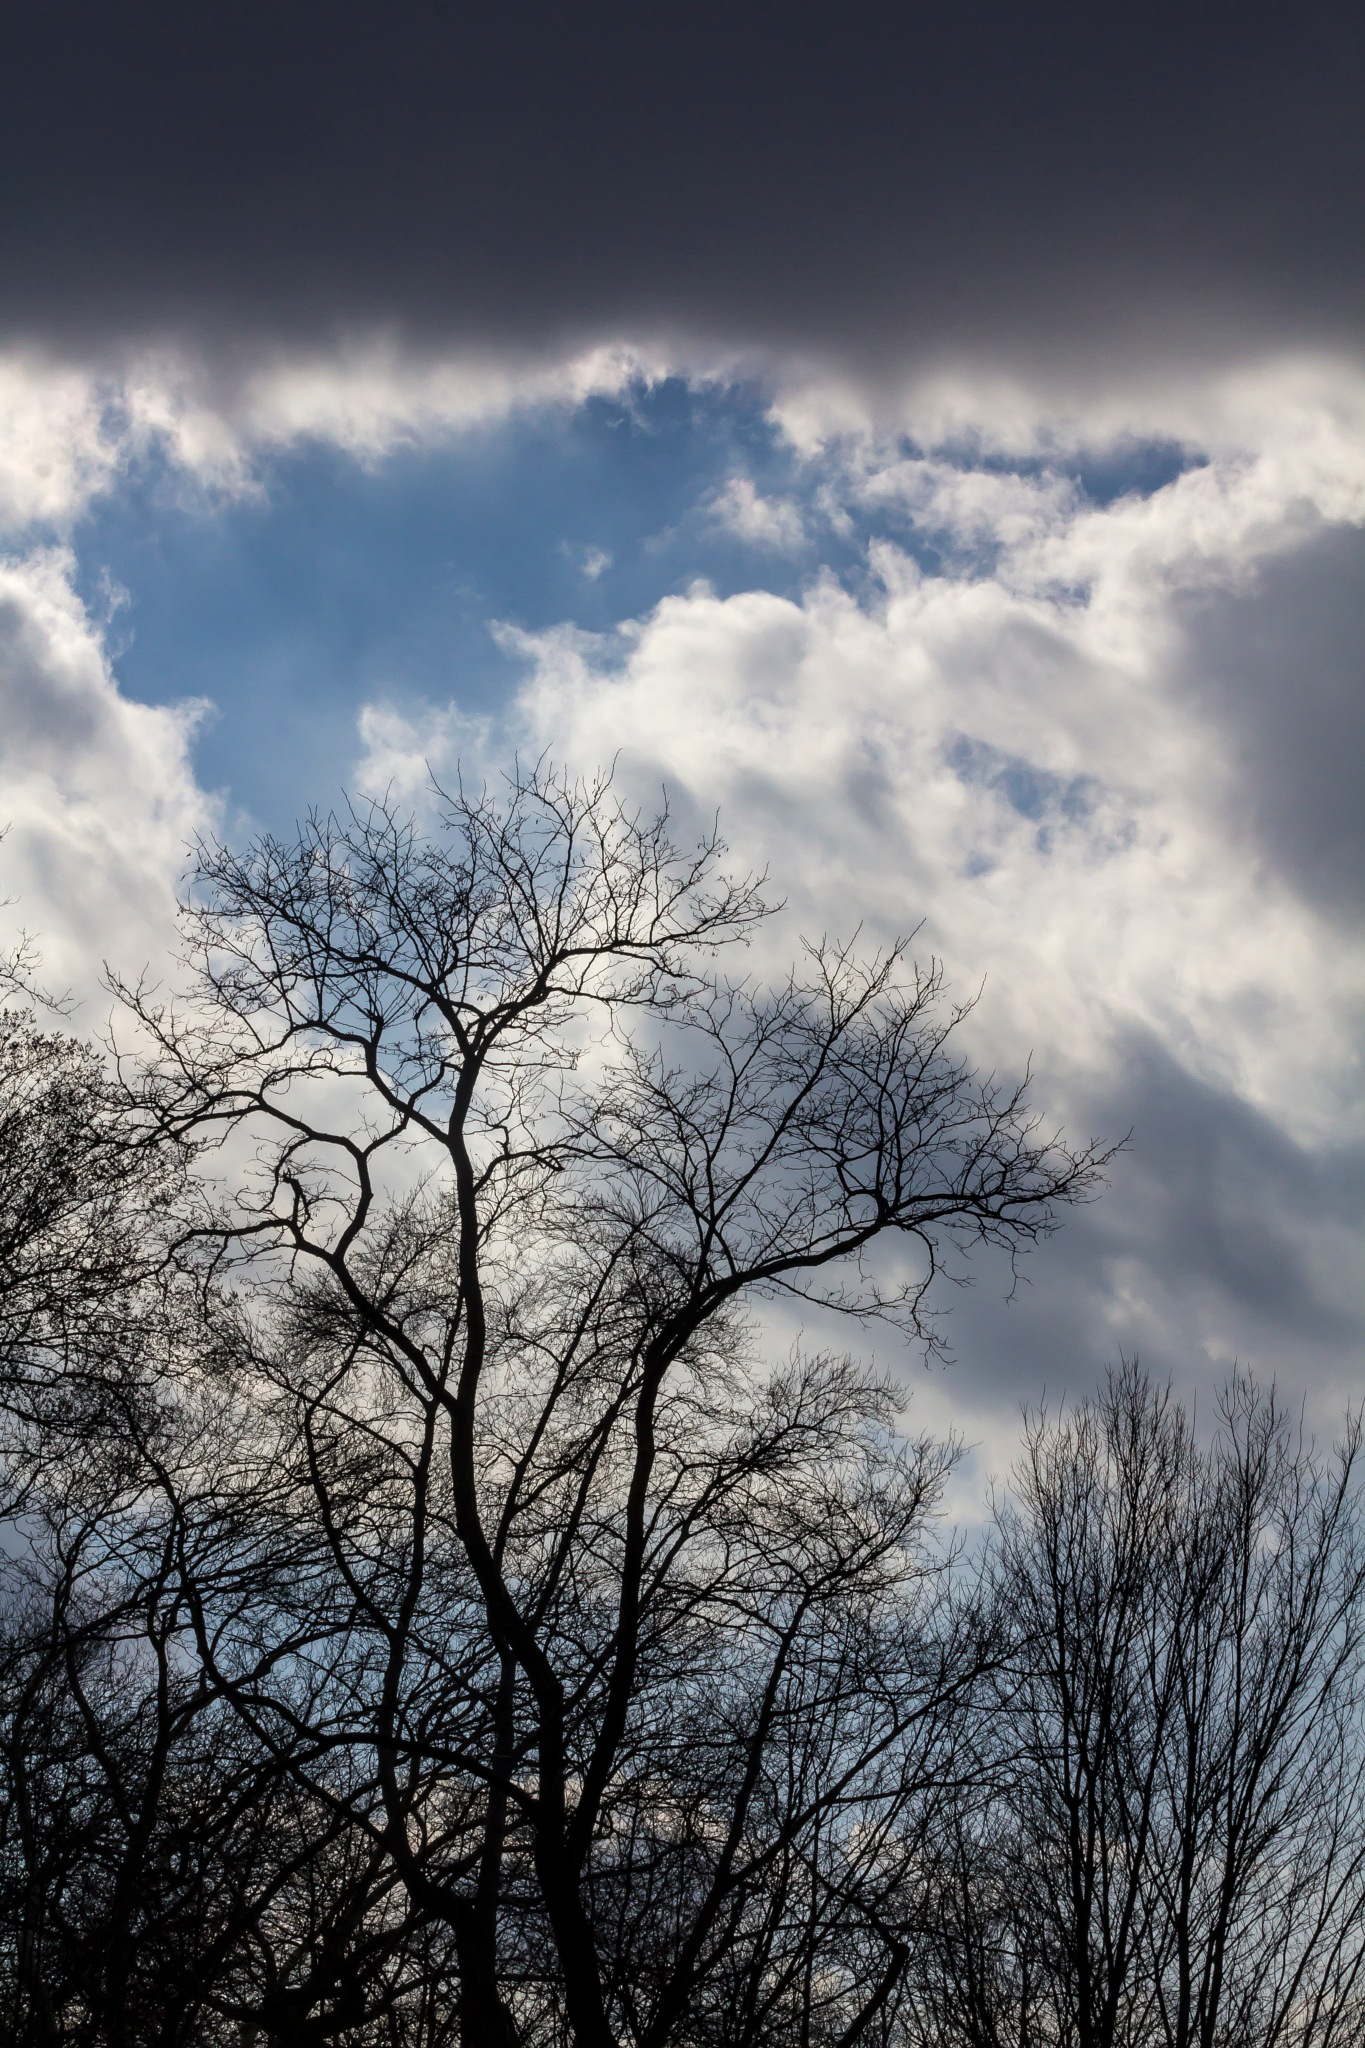 Sky Clouds and Trees by robertullmann